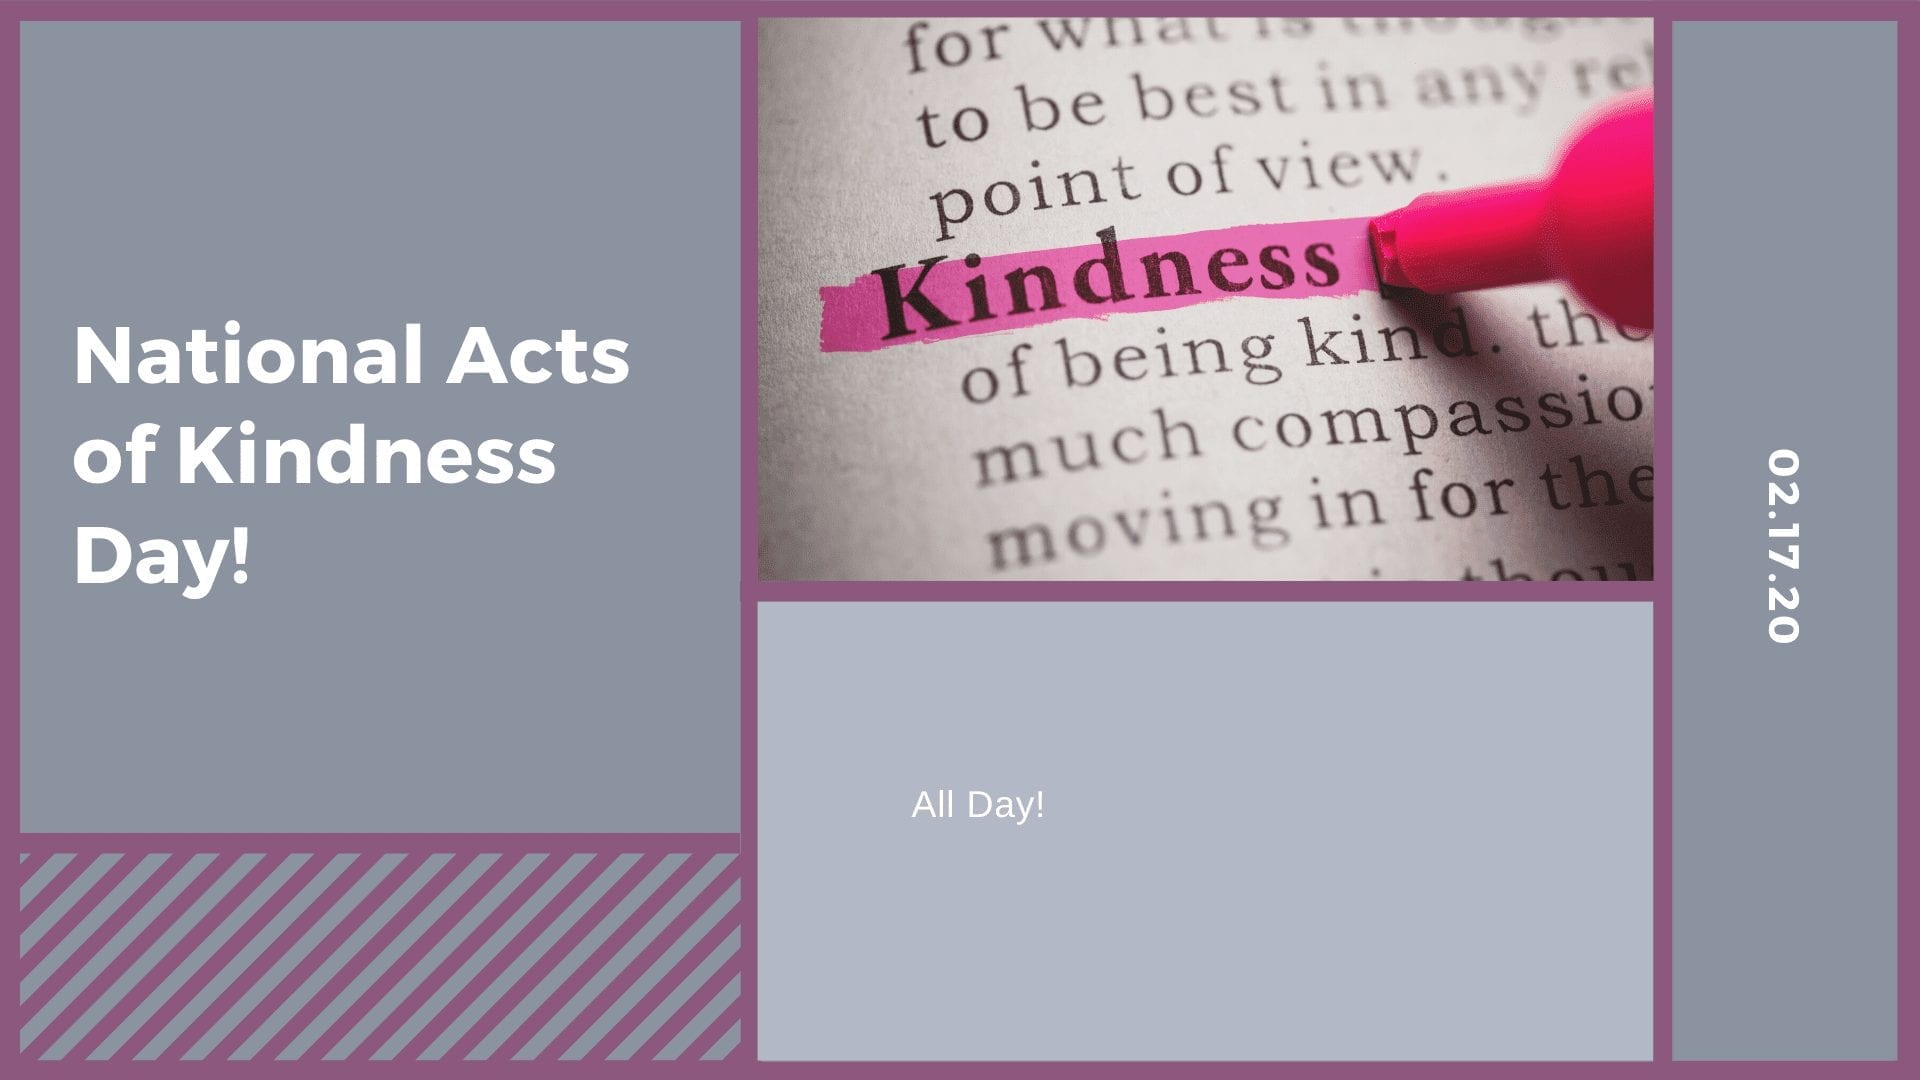 National Acts of Kindness Day!